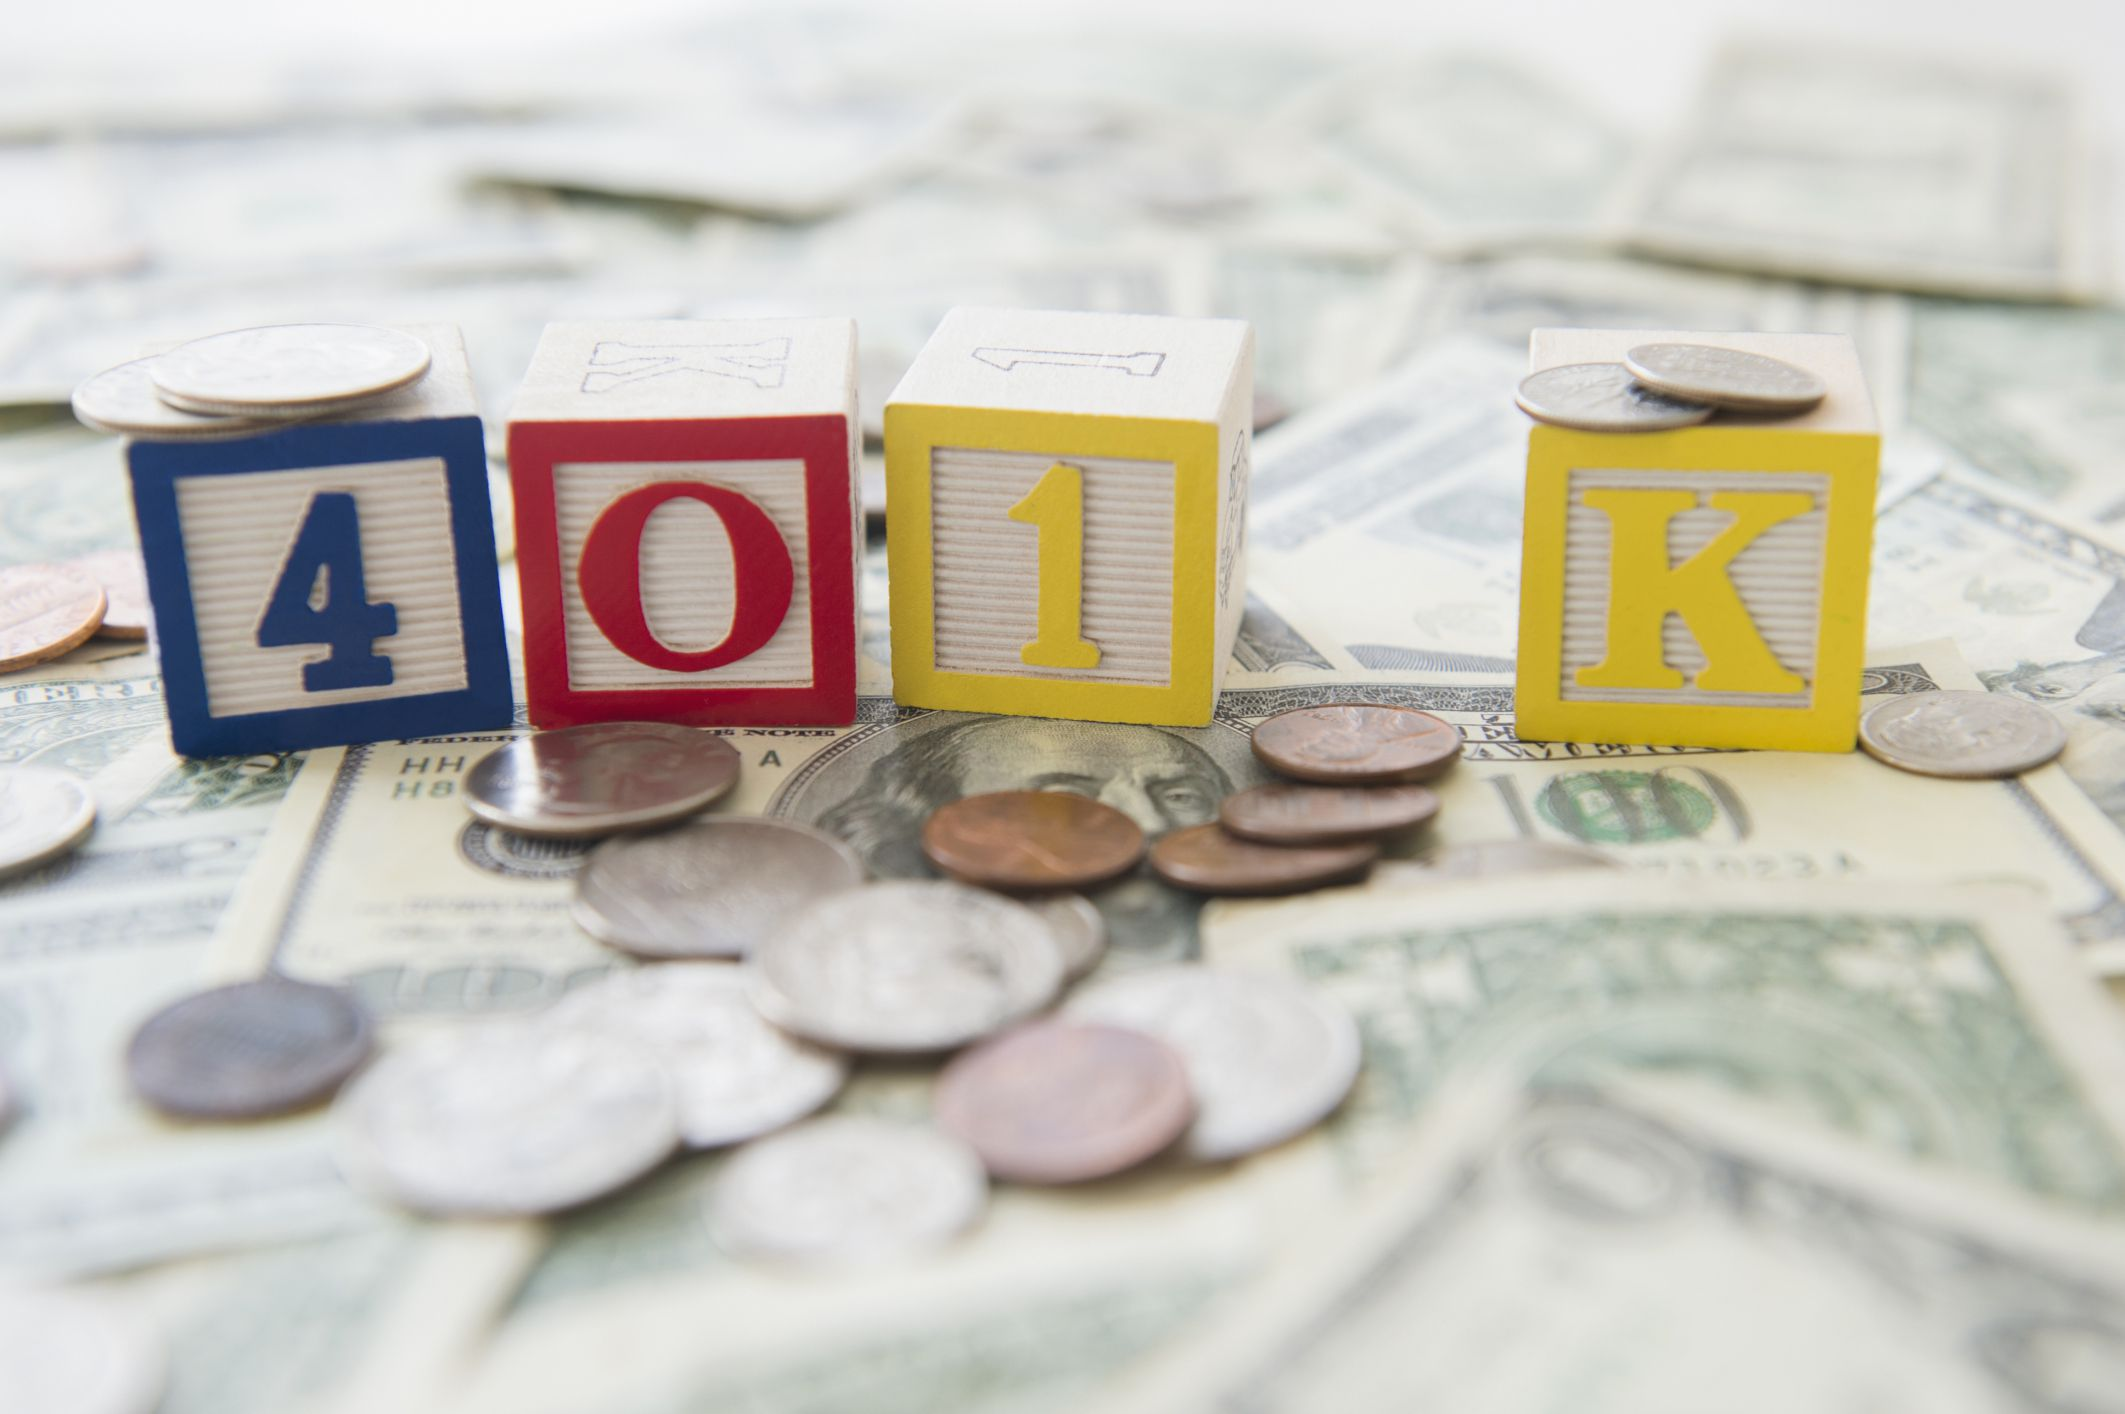 How To Get the Most Out of Your 401(k) Plan